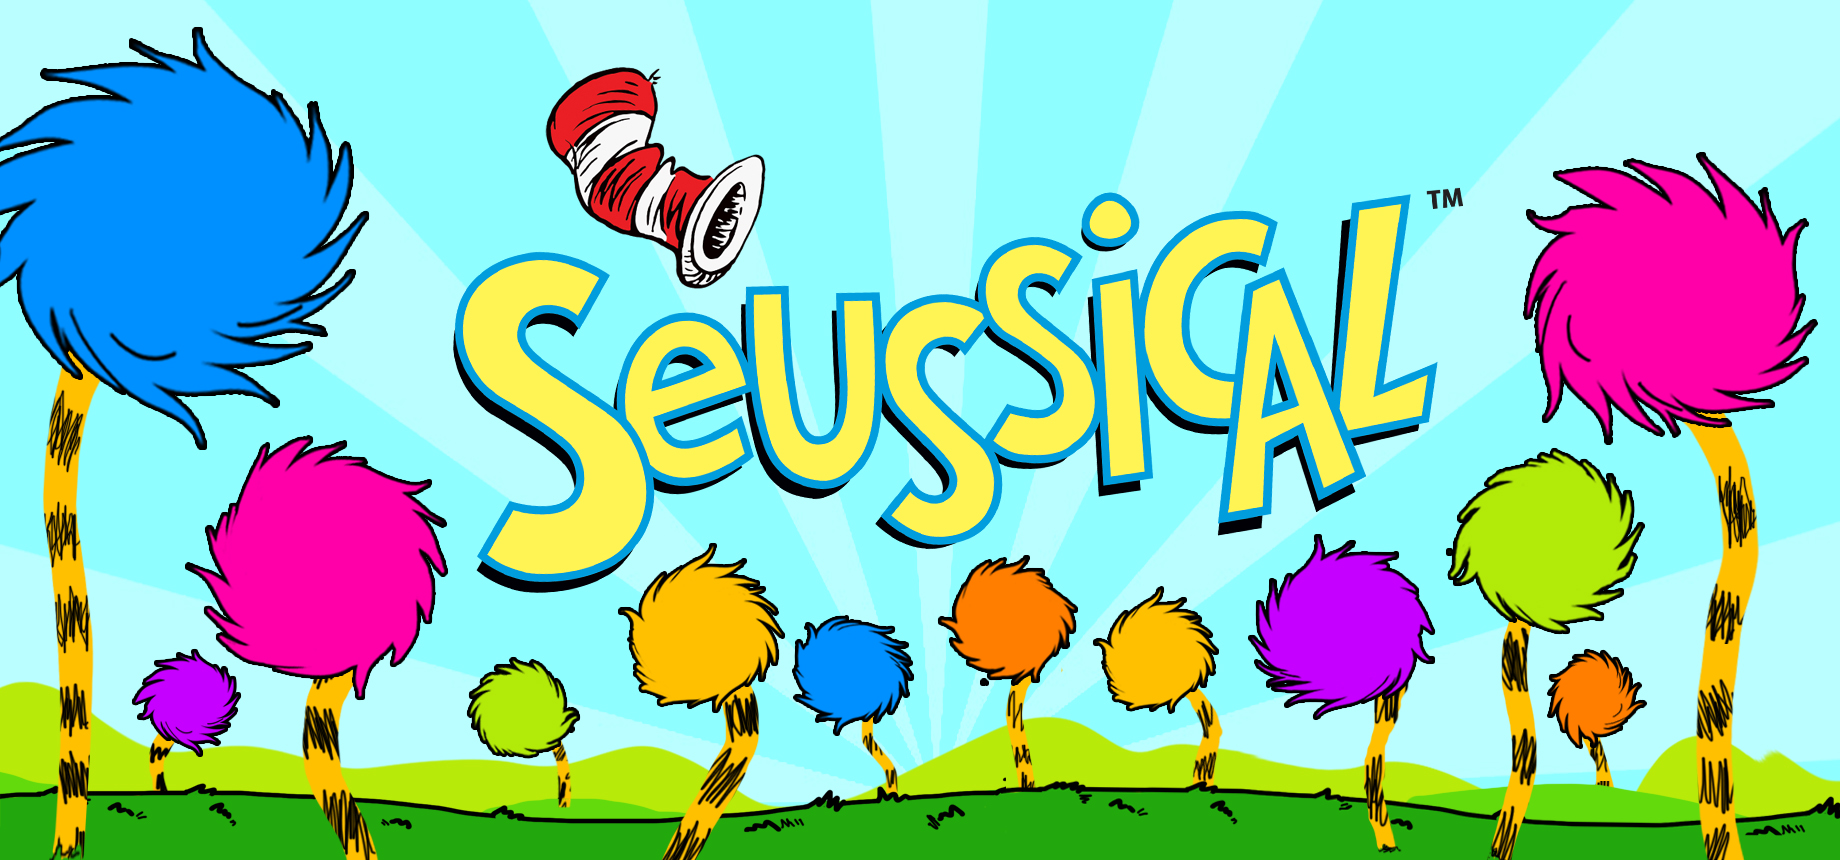 Printables & Worksheets for a Dr. Seuss Theme | A to Z Teacher ... | 860x1840